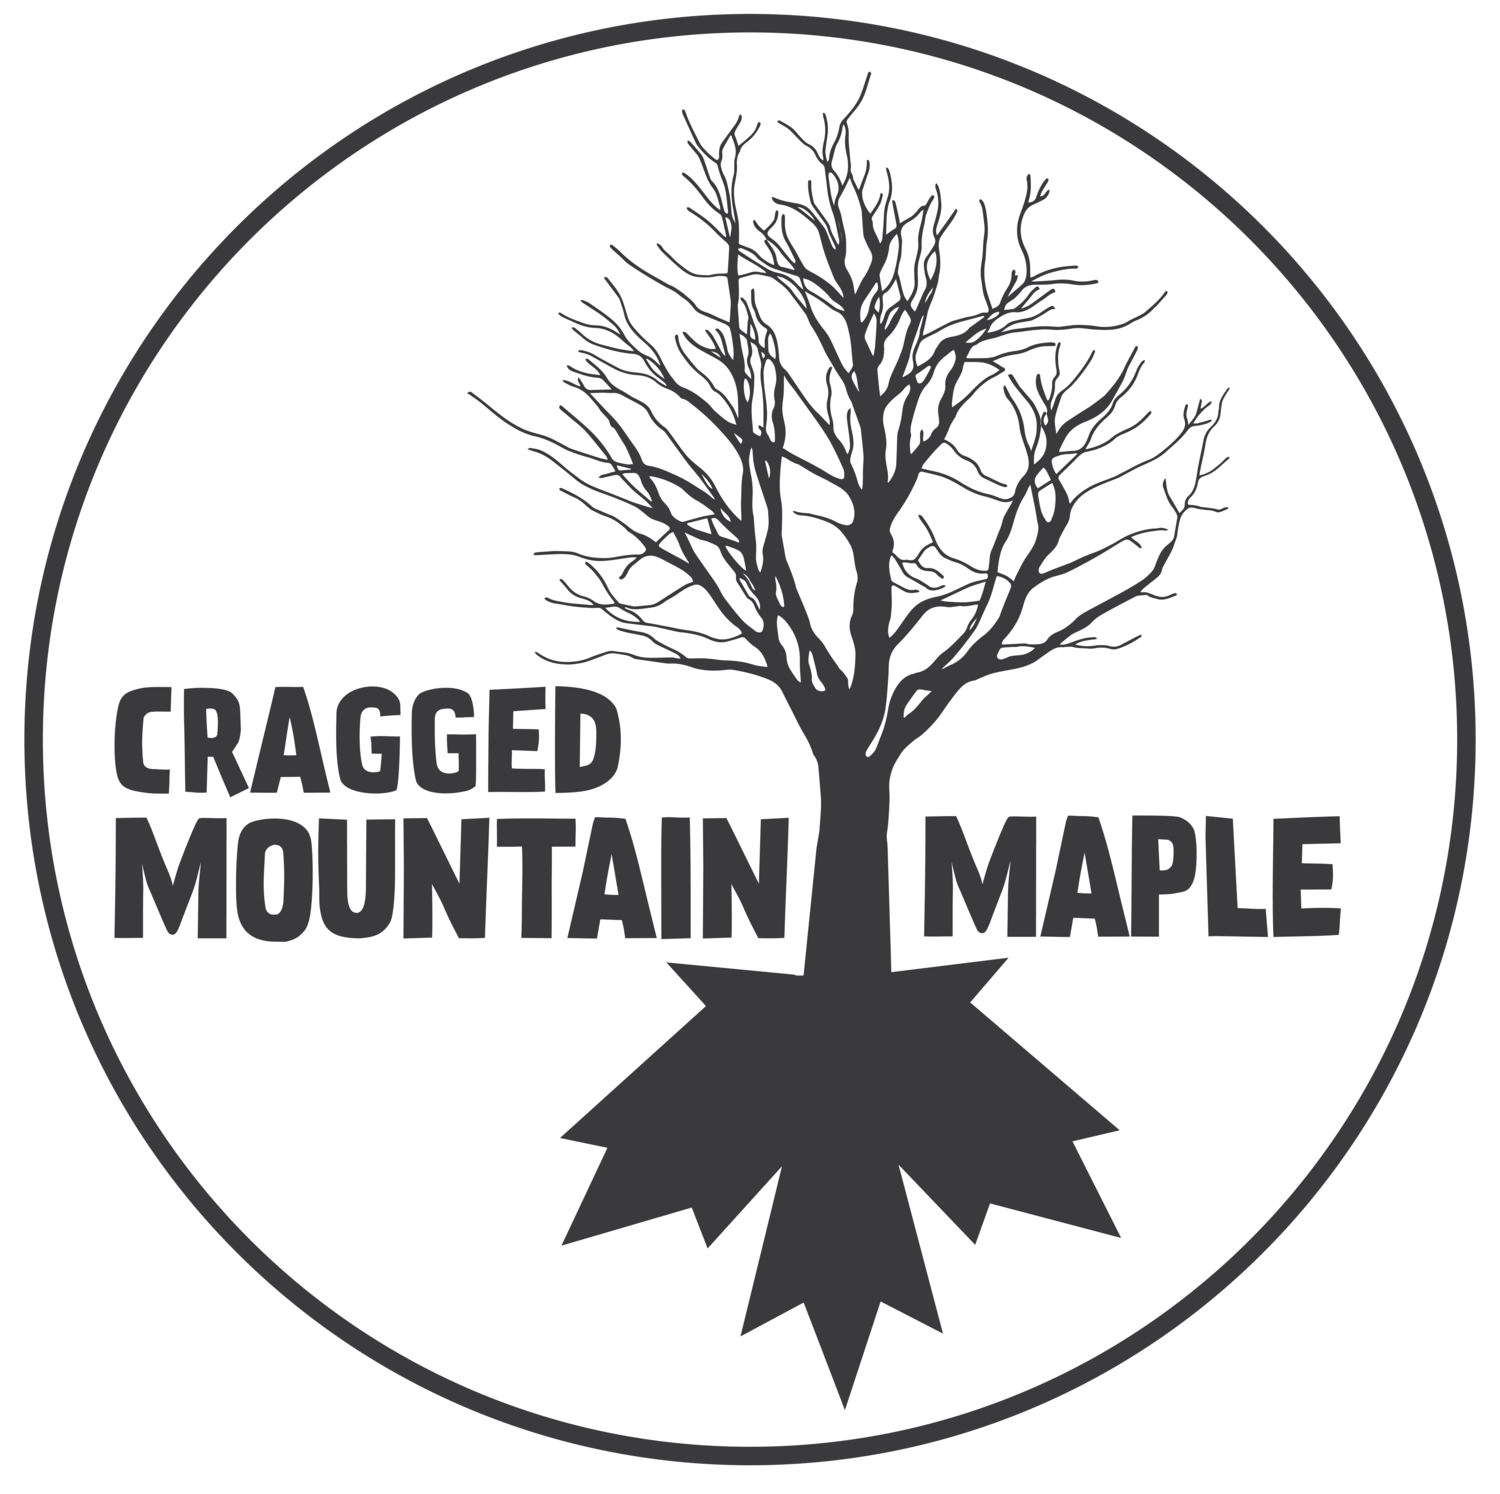 Cragged Mountain Maple